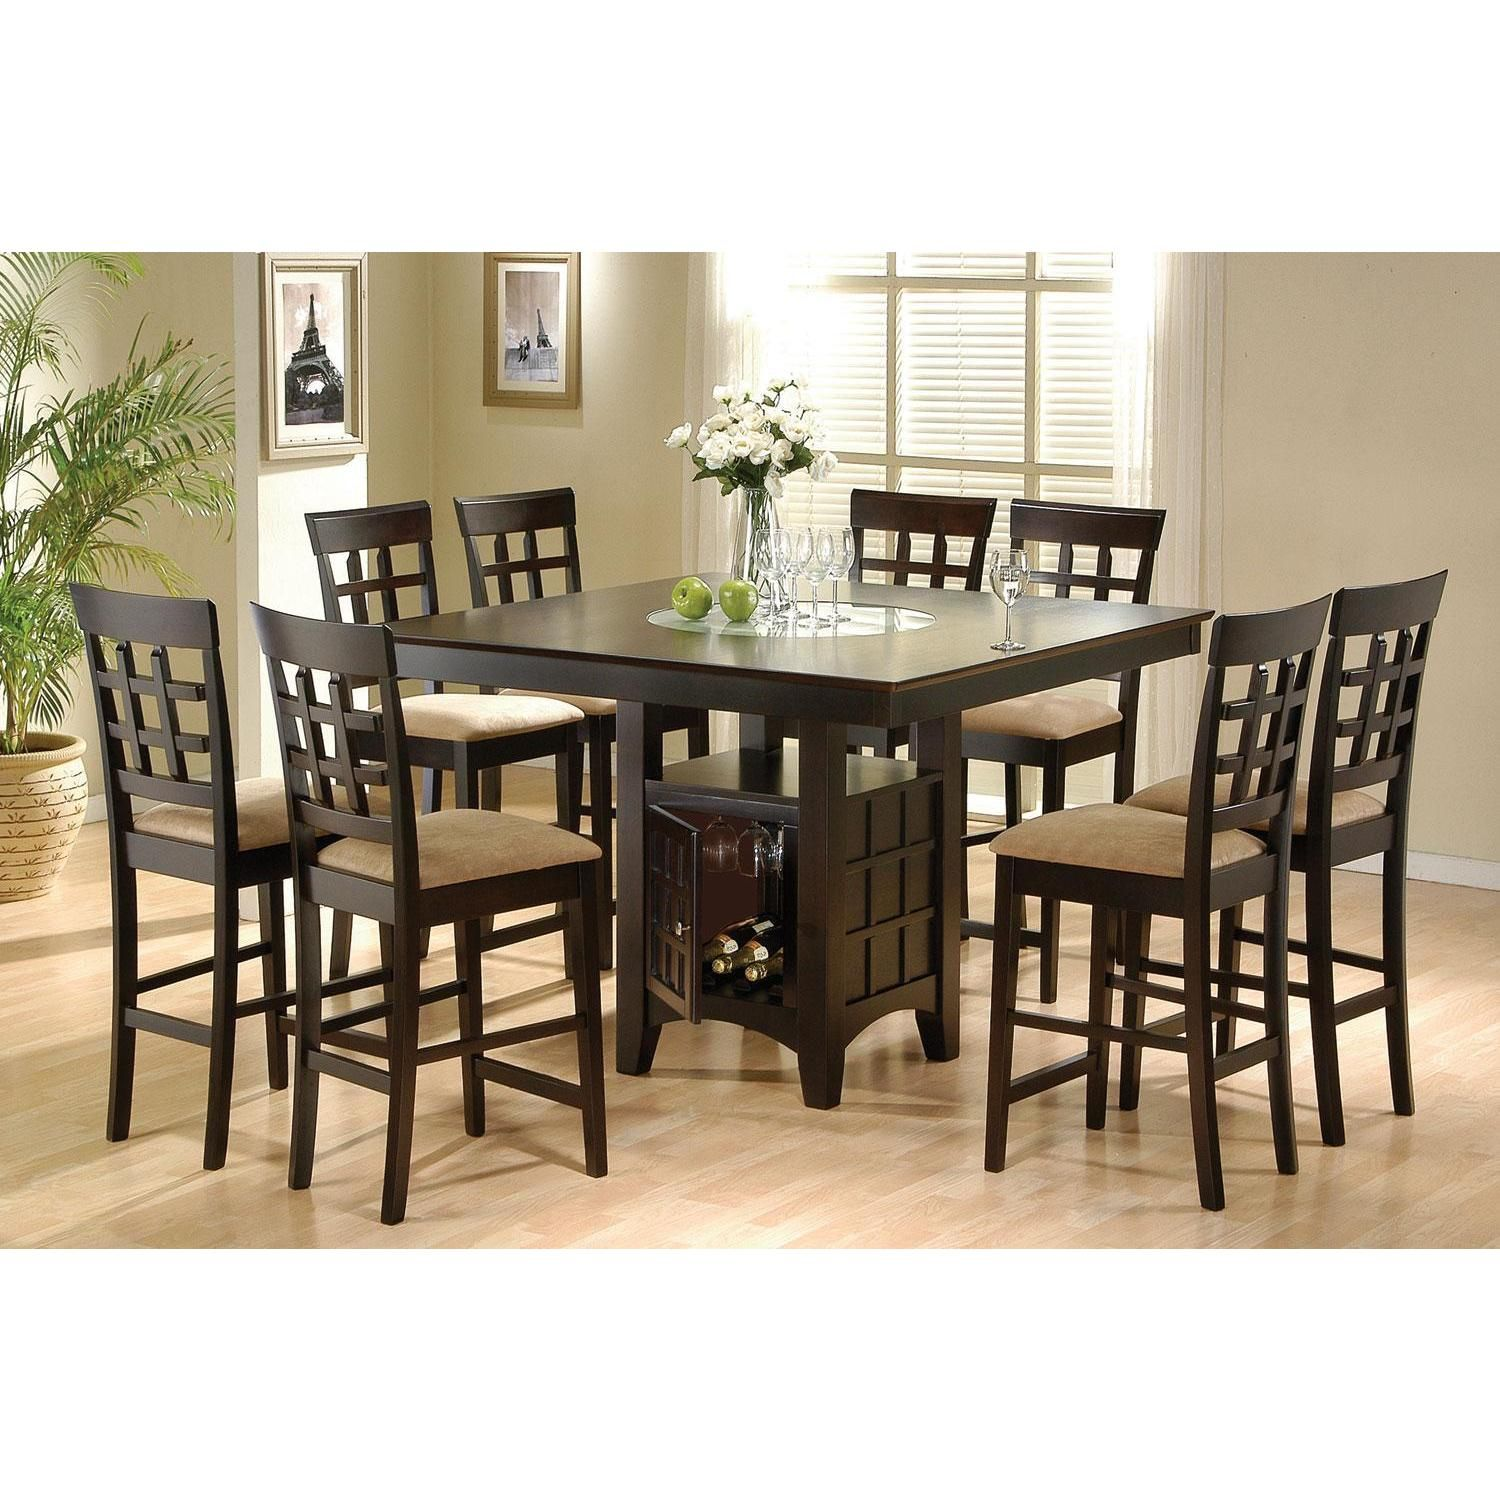 Most Lucrative Dining Room Interior Design Ideas To Beauty: West Caraway 9-piece Dining Set (West Caraway 9 Piece Set